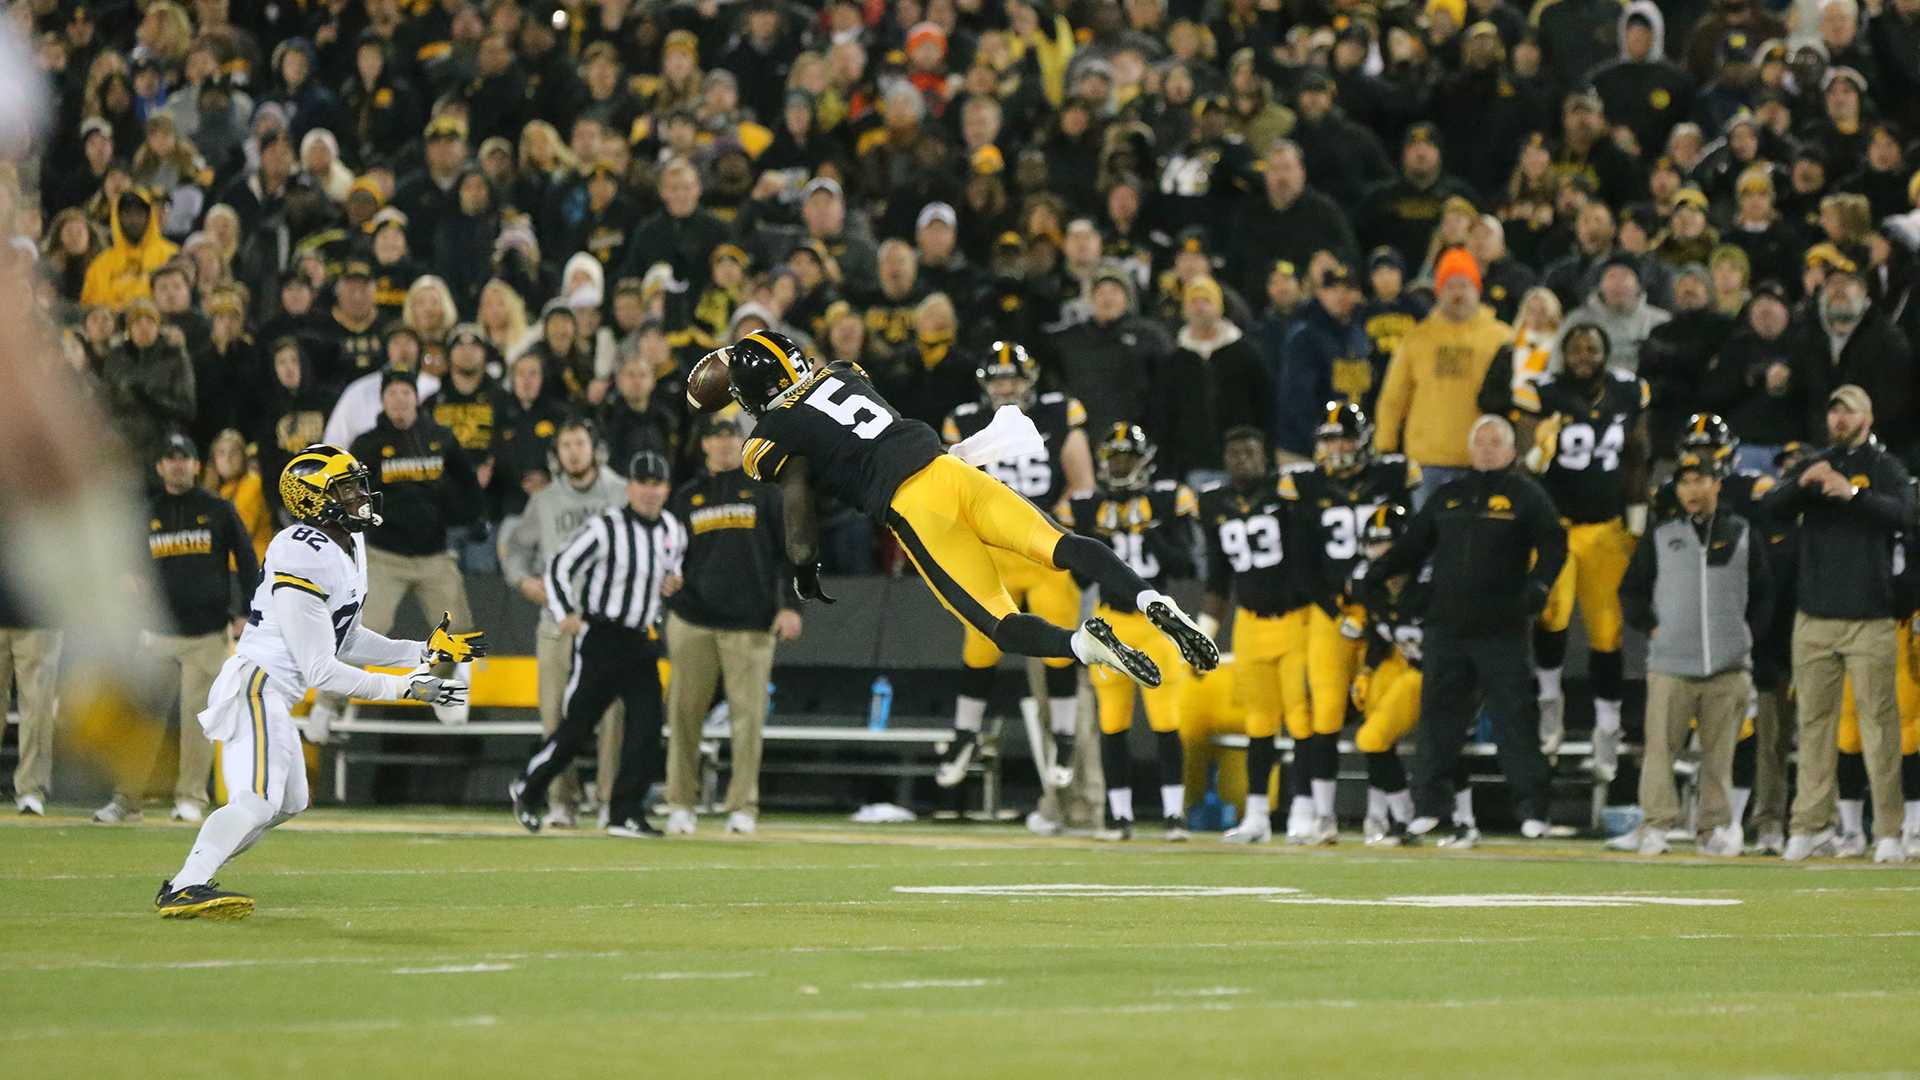 Iowa defensive back Manny Rugamba deflects a pass during the game between Michigan and Iowa at Kinnick Stadium on Saturday, November 12, 2016. Iowa kicker Keith Duncan nailed a 33 yard field goal as the time ran out to beat the No. 2 Wolverines 14-13. (The Daily Iowan/ Alex Kroeze)